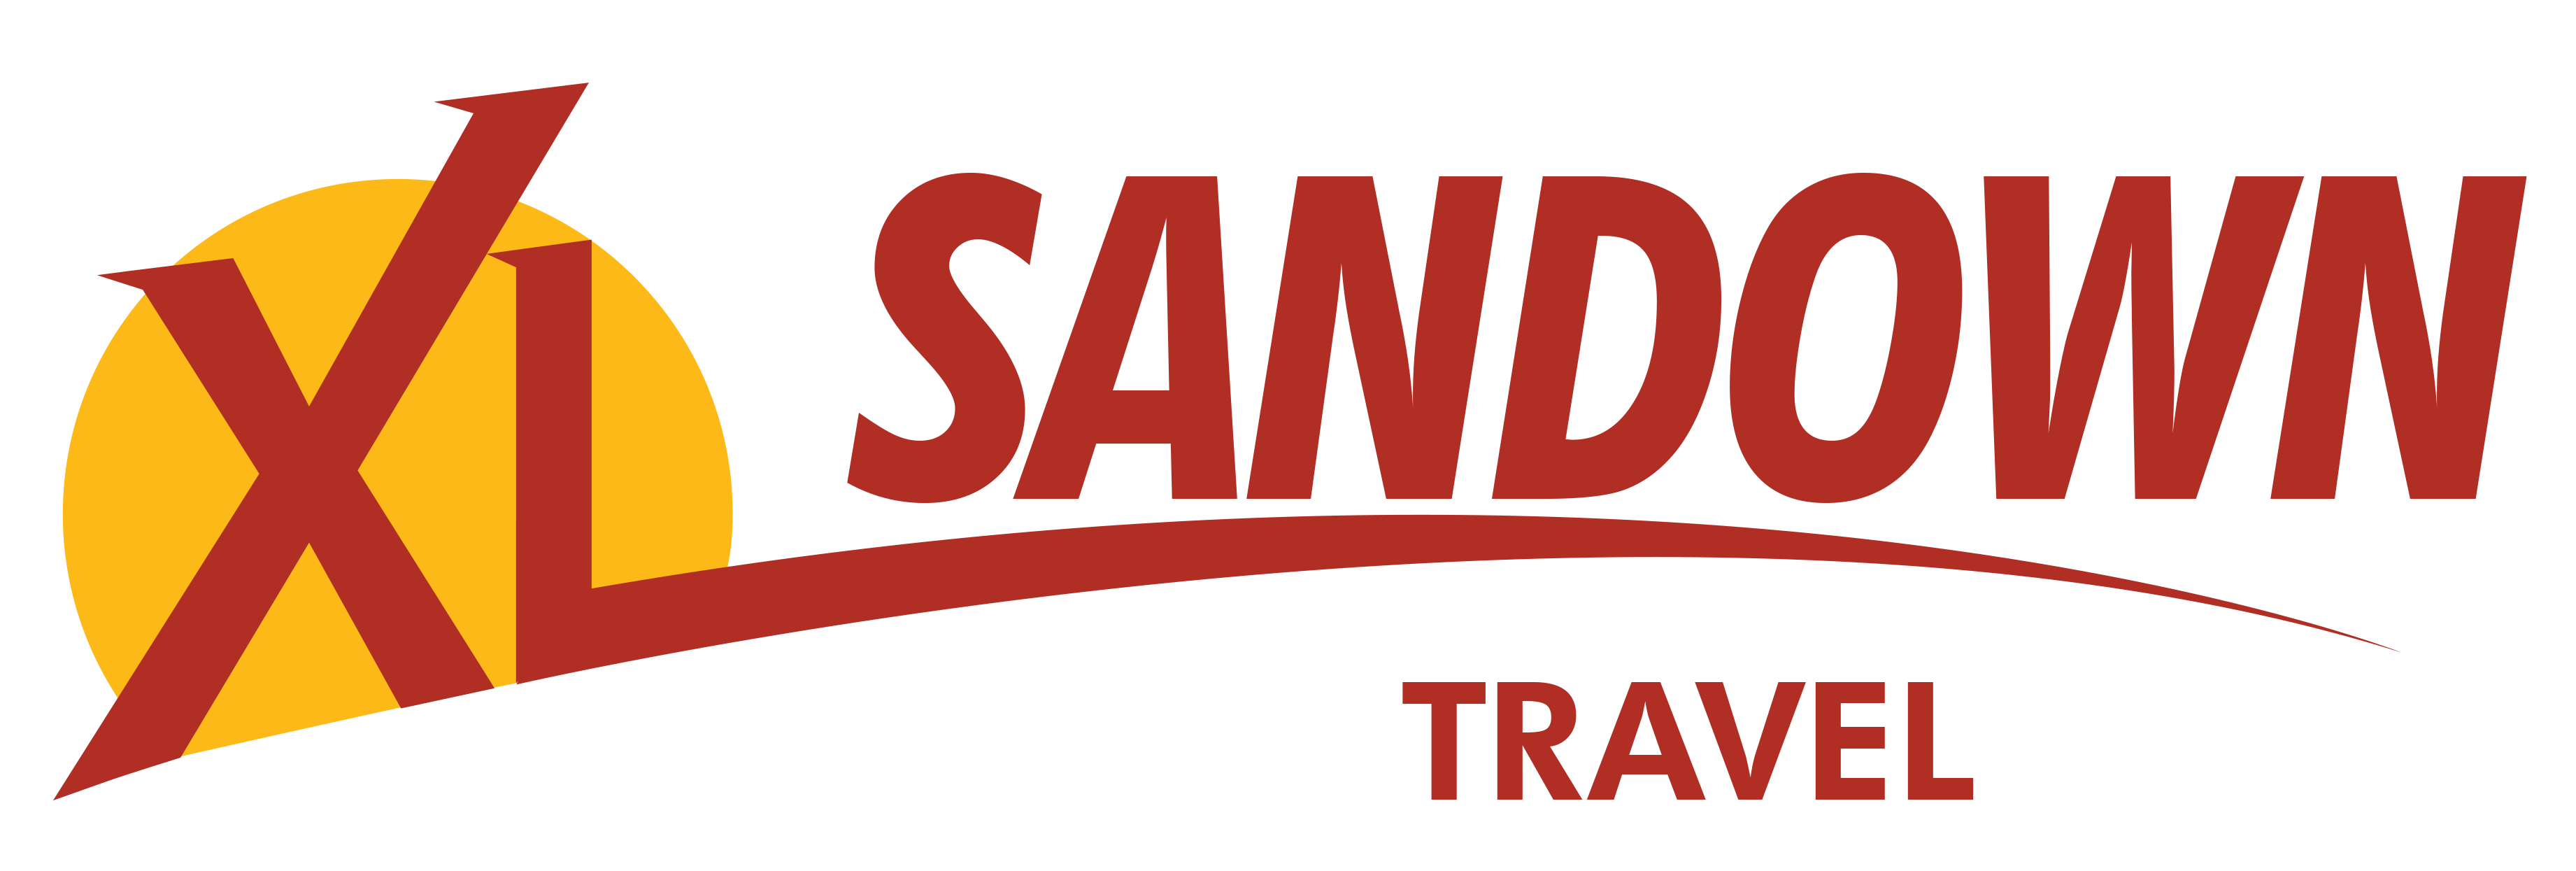 XL Sandown Travel